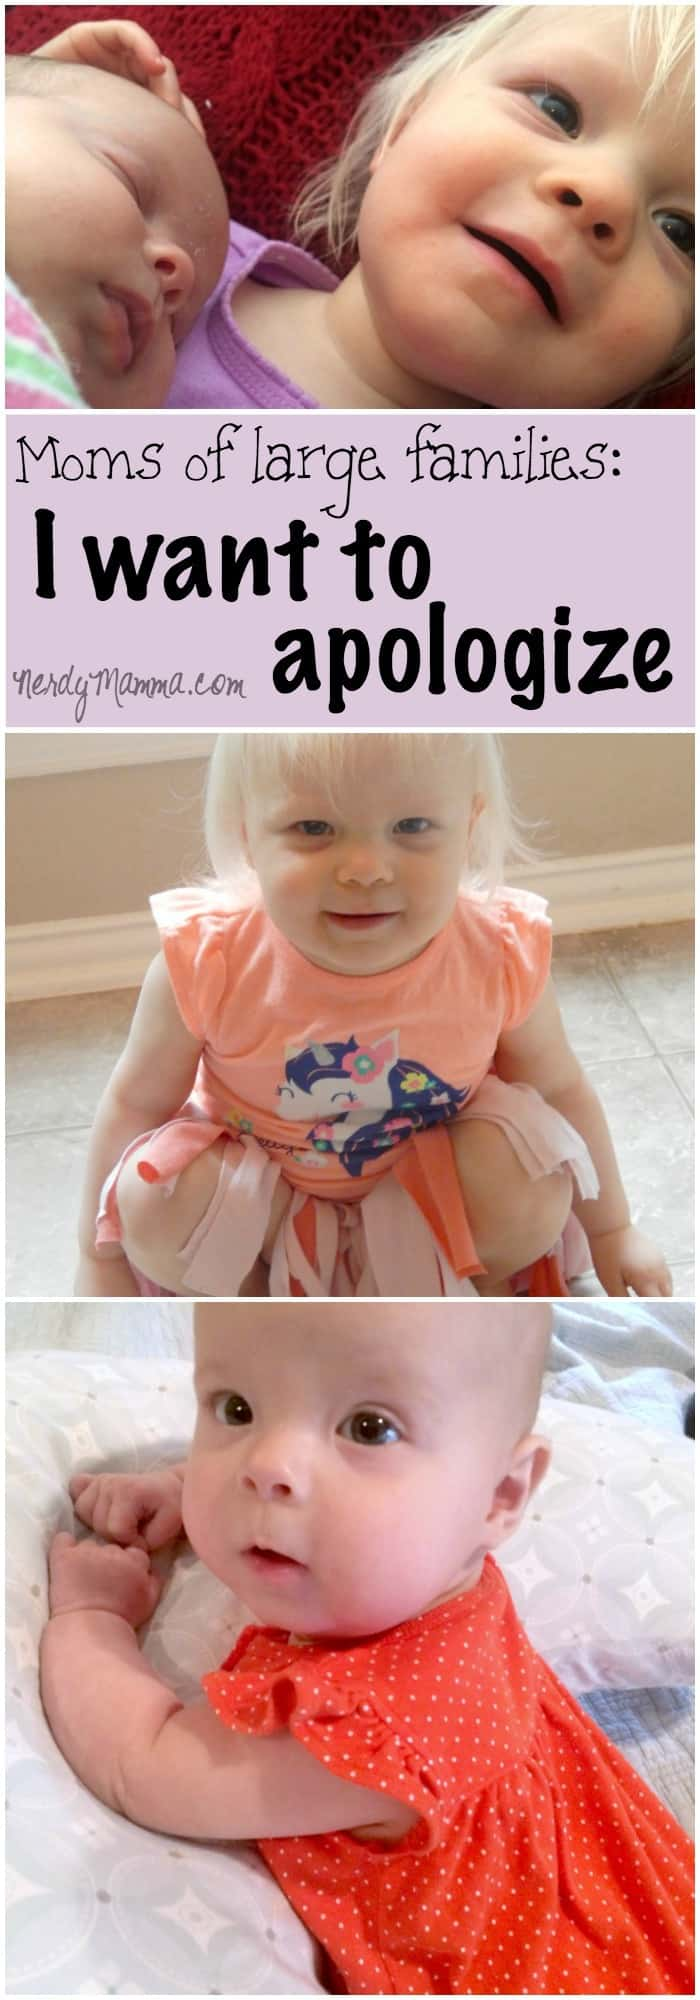 Dear Moms of families with lots of kids. I understand now, and I'm sorry about...you know, before.